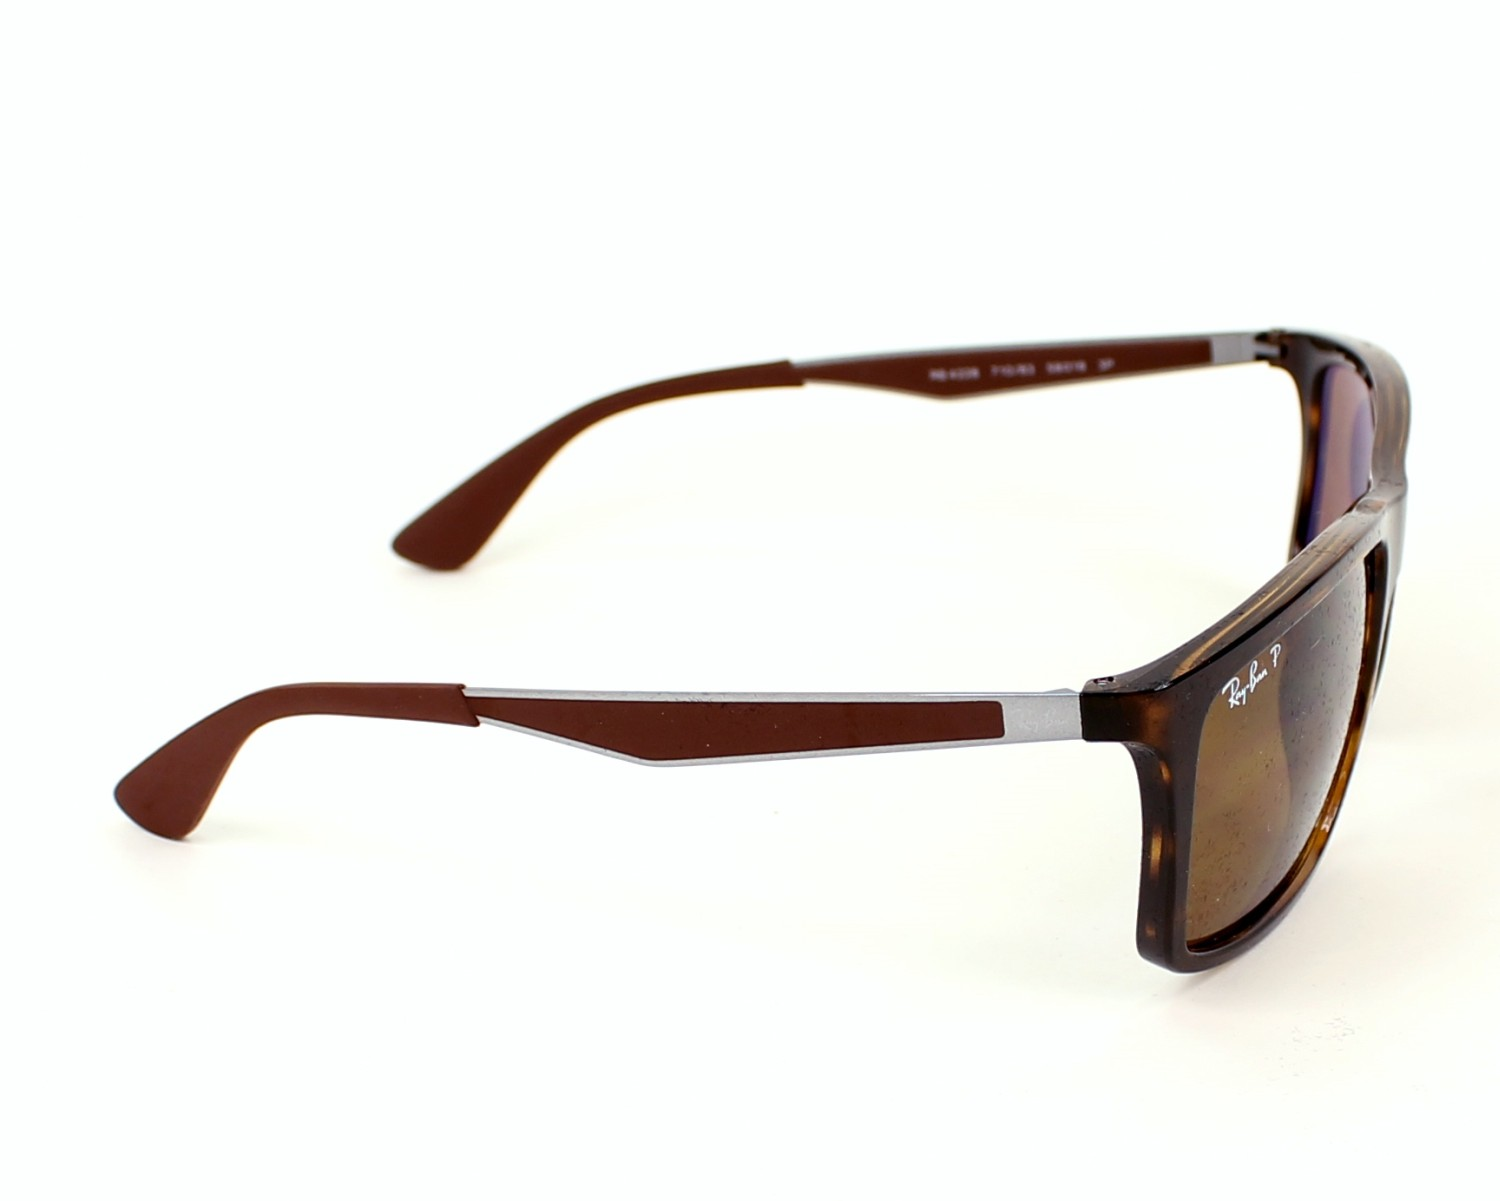 5faffe4569e Sunglasses Ray-Ban RB-4228 710 83 58-18 Havana Brown side